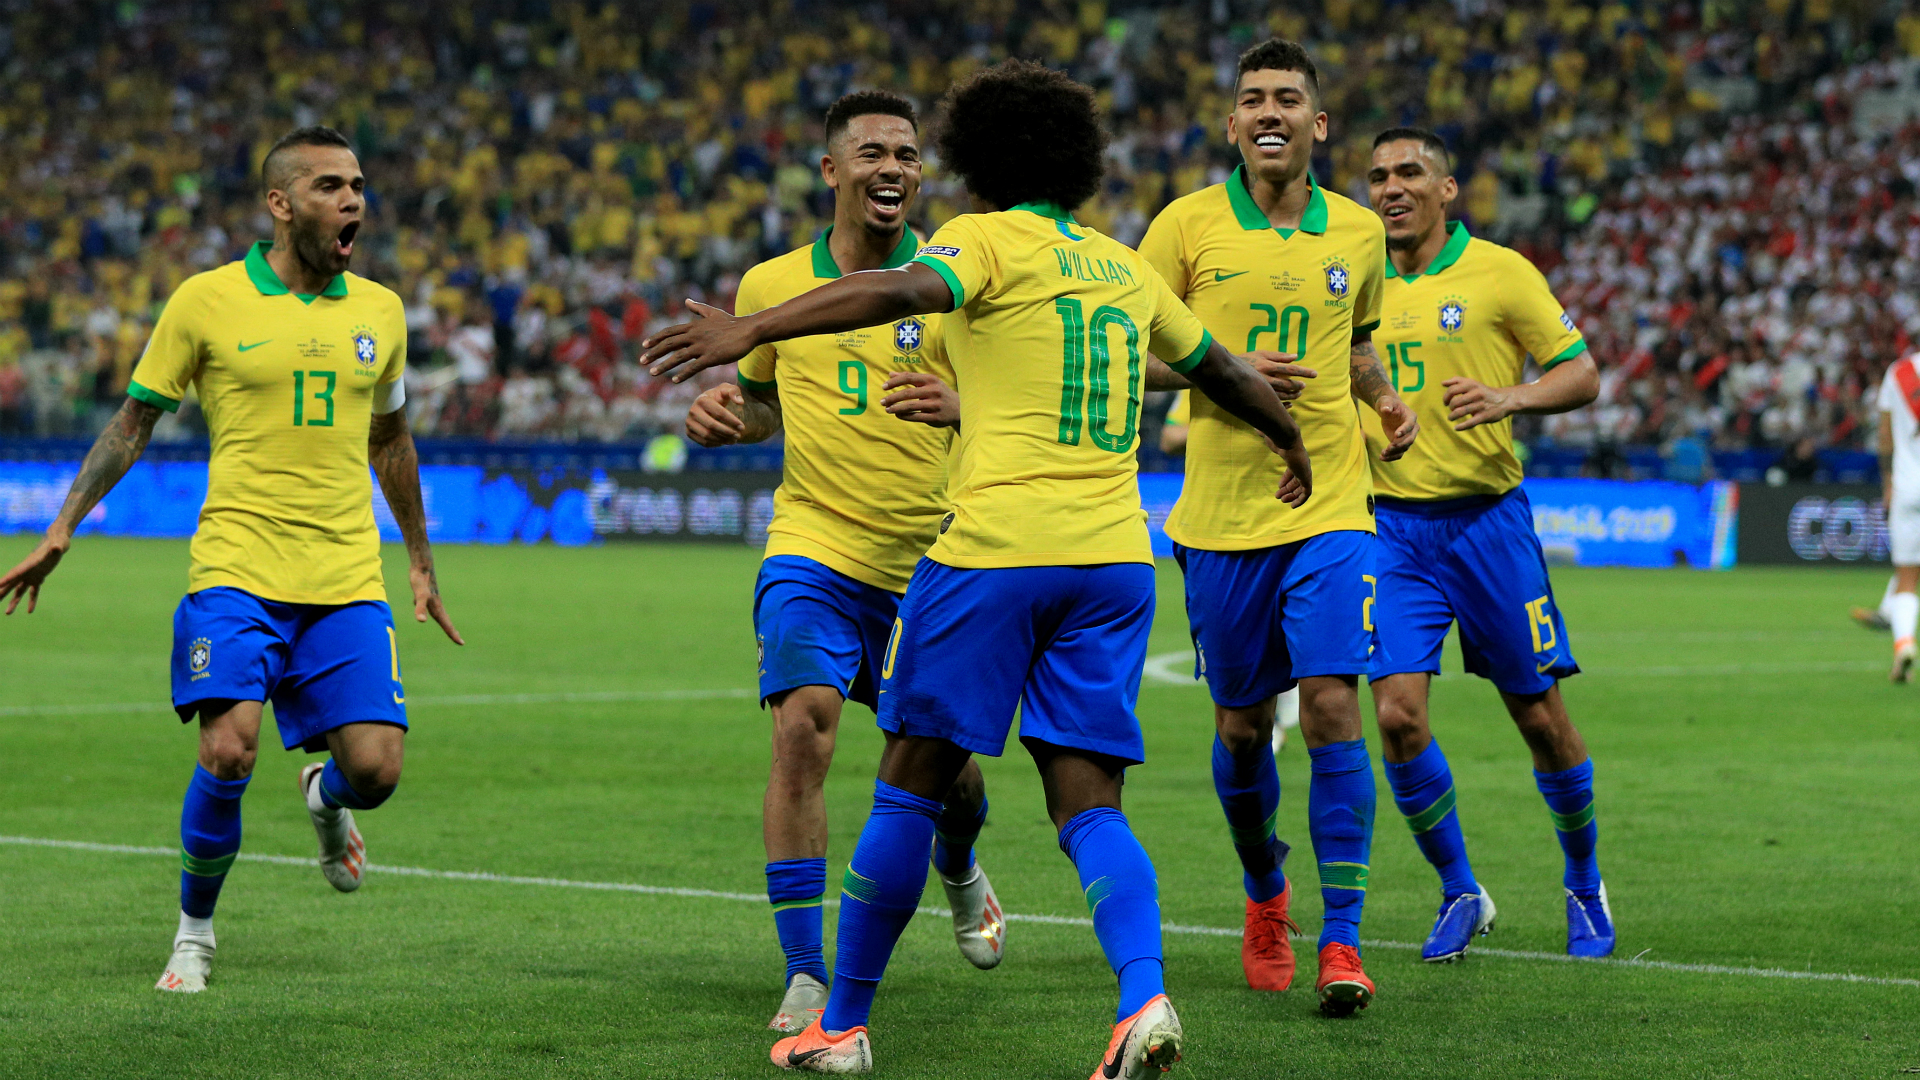 Tite: Peru rout one of Brazil's best matches